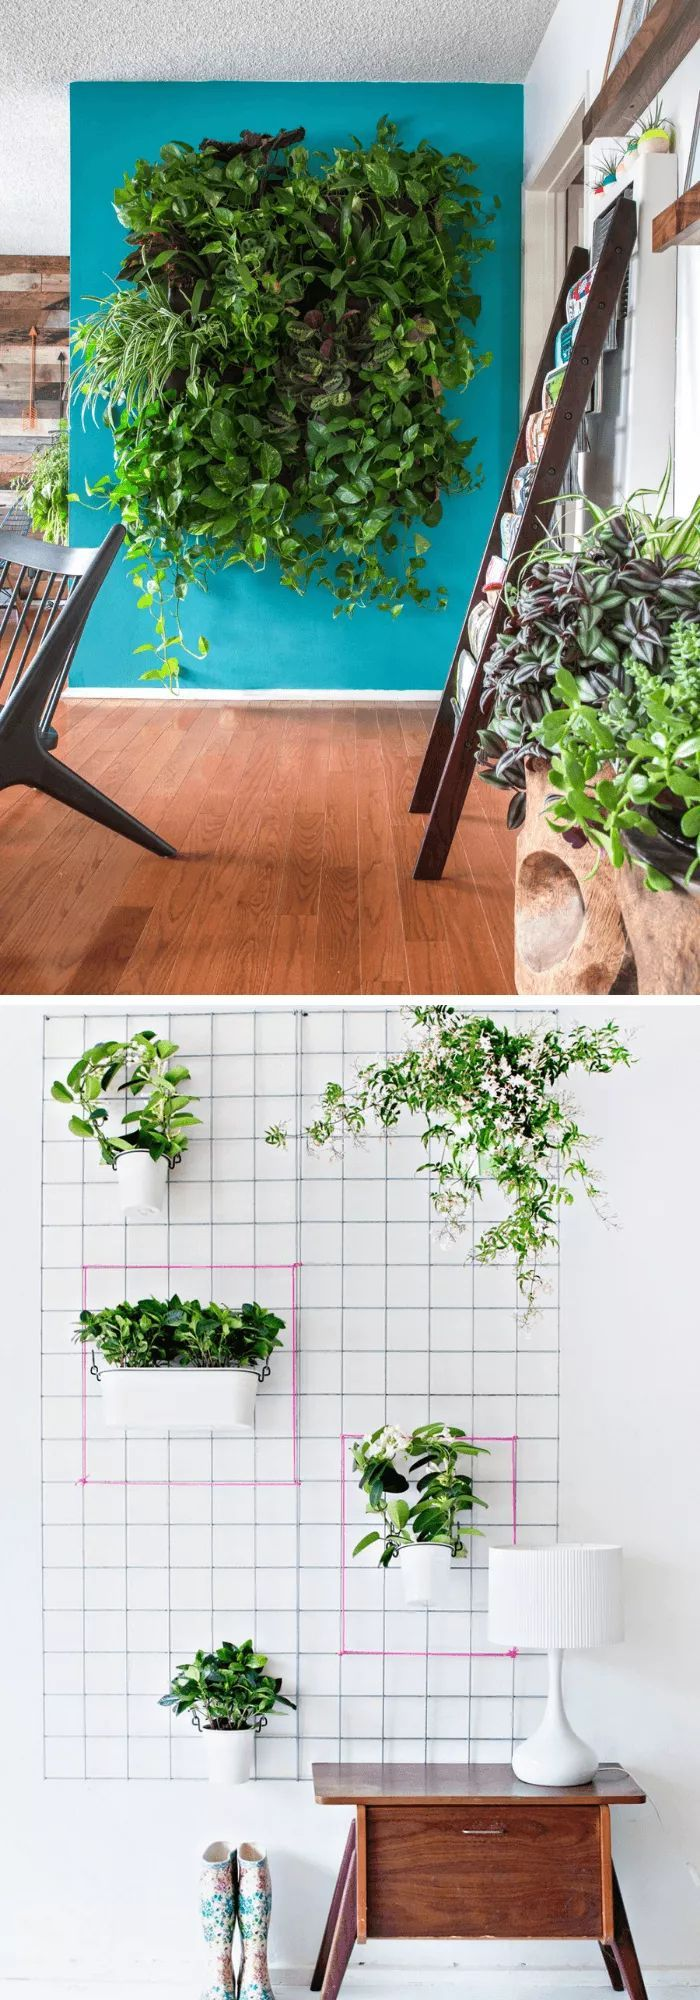 15 best diy indoor plant wall projects ideas for 2020 on indoor vertical garden wall diy id=23384